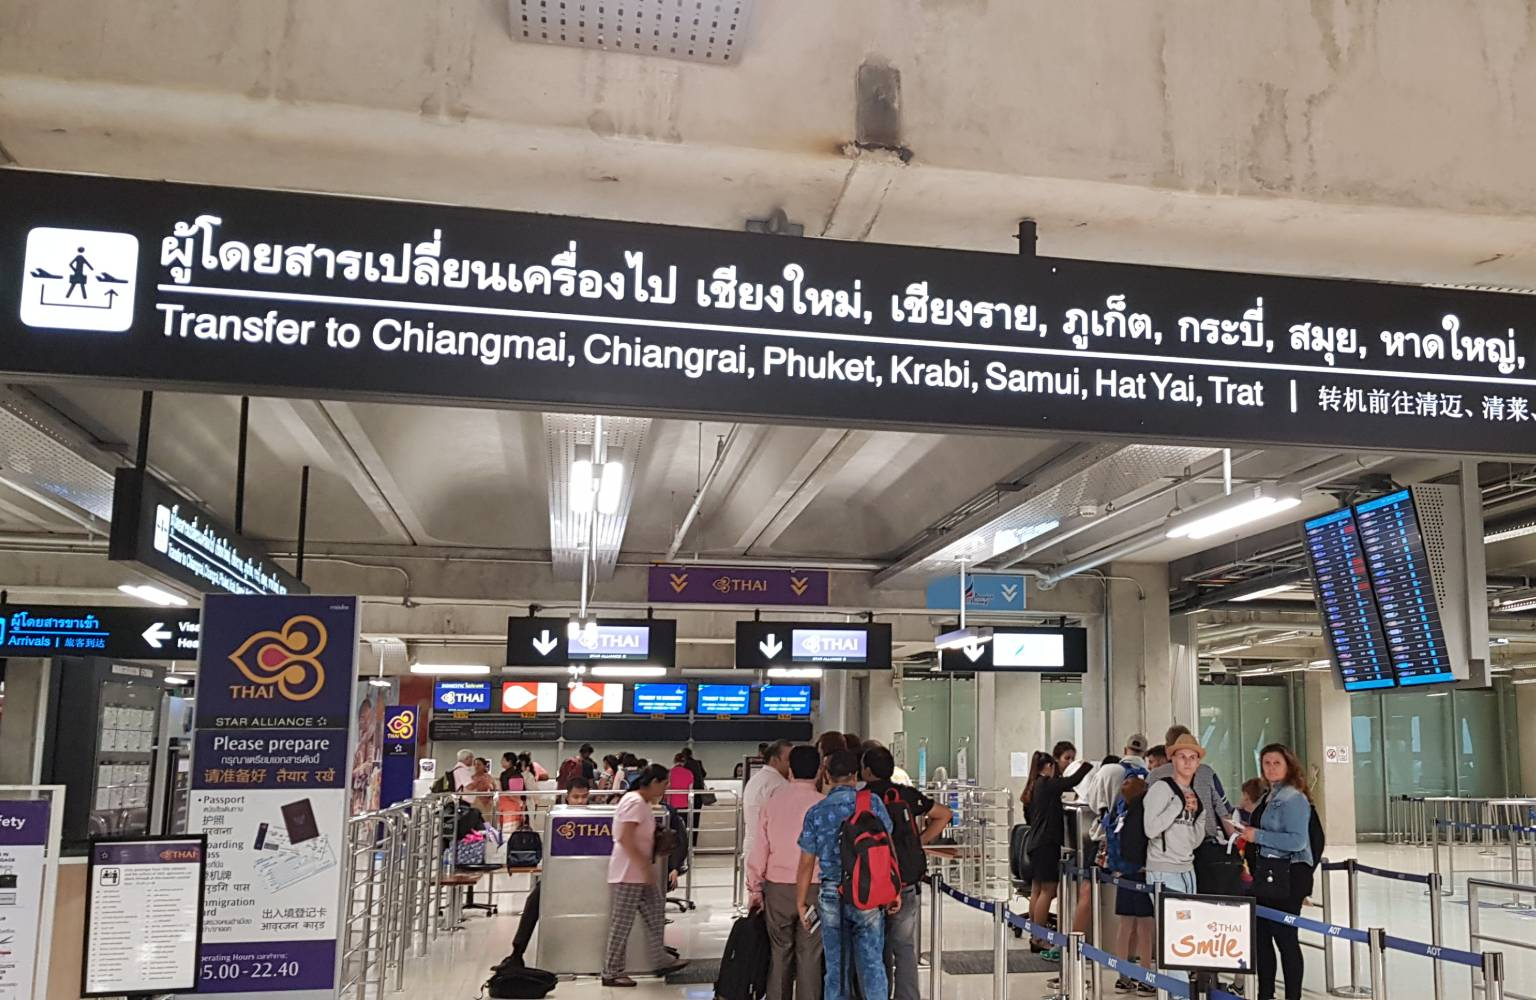 Inside the airport of Chiang Mai